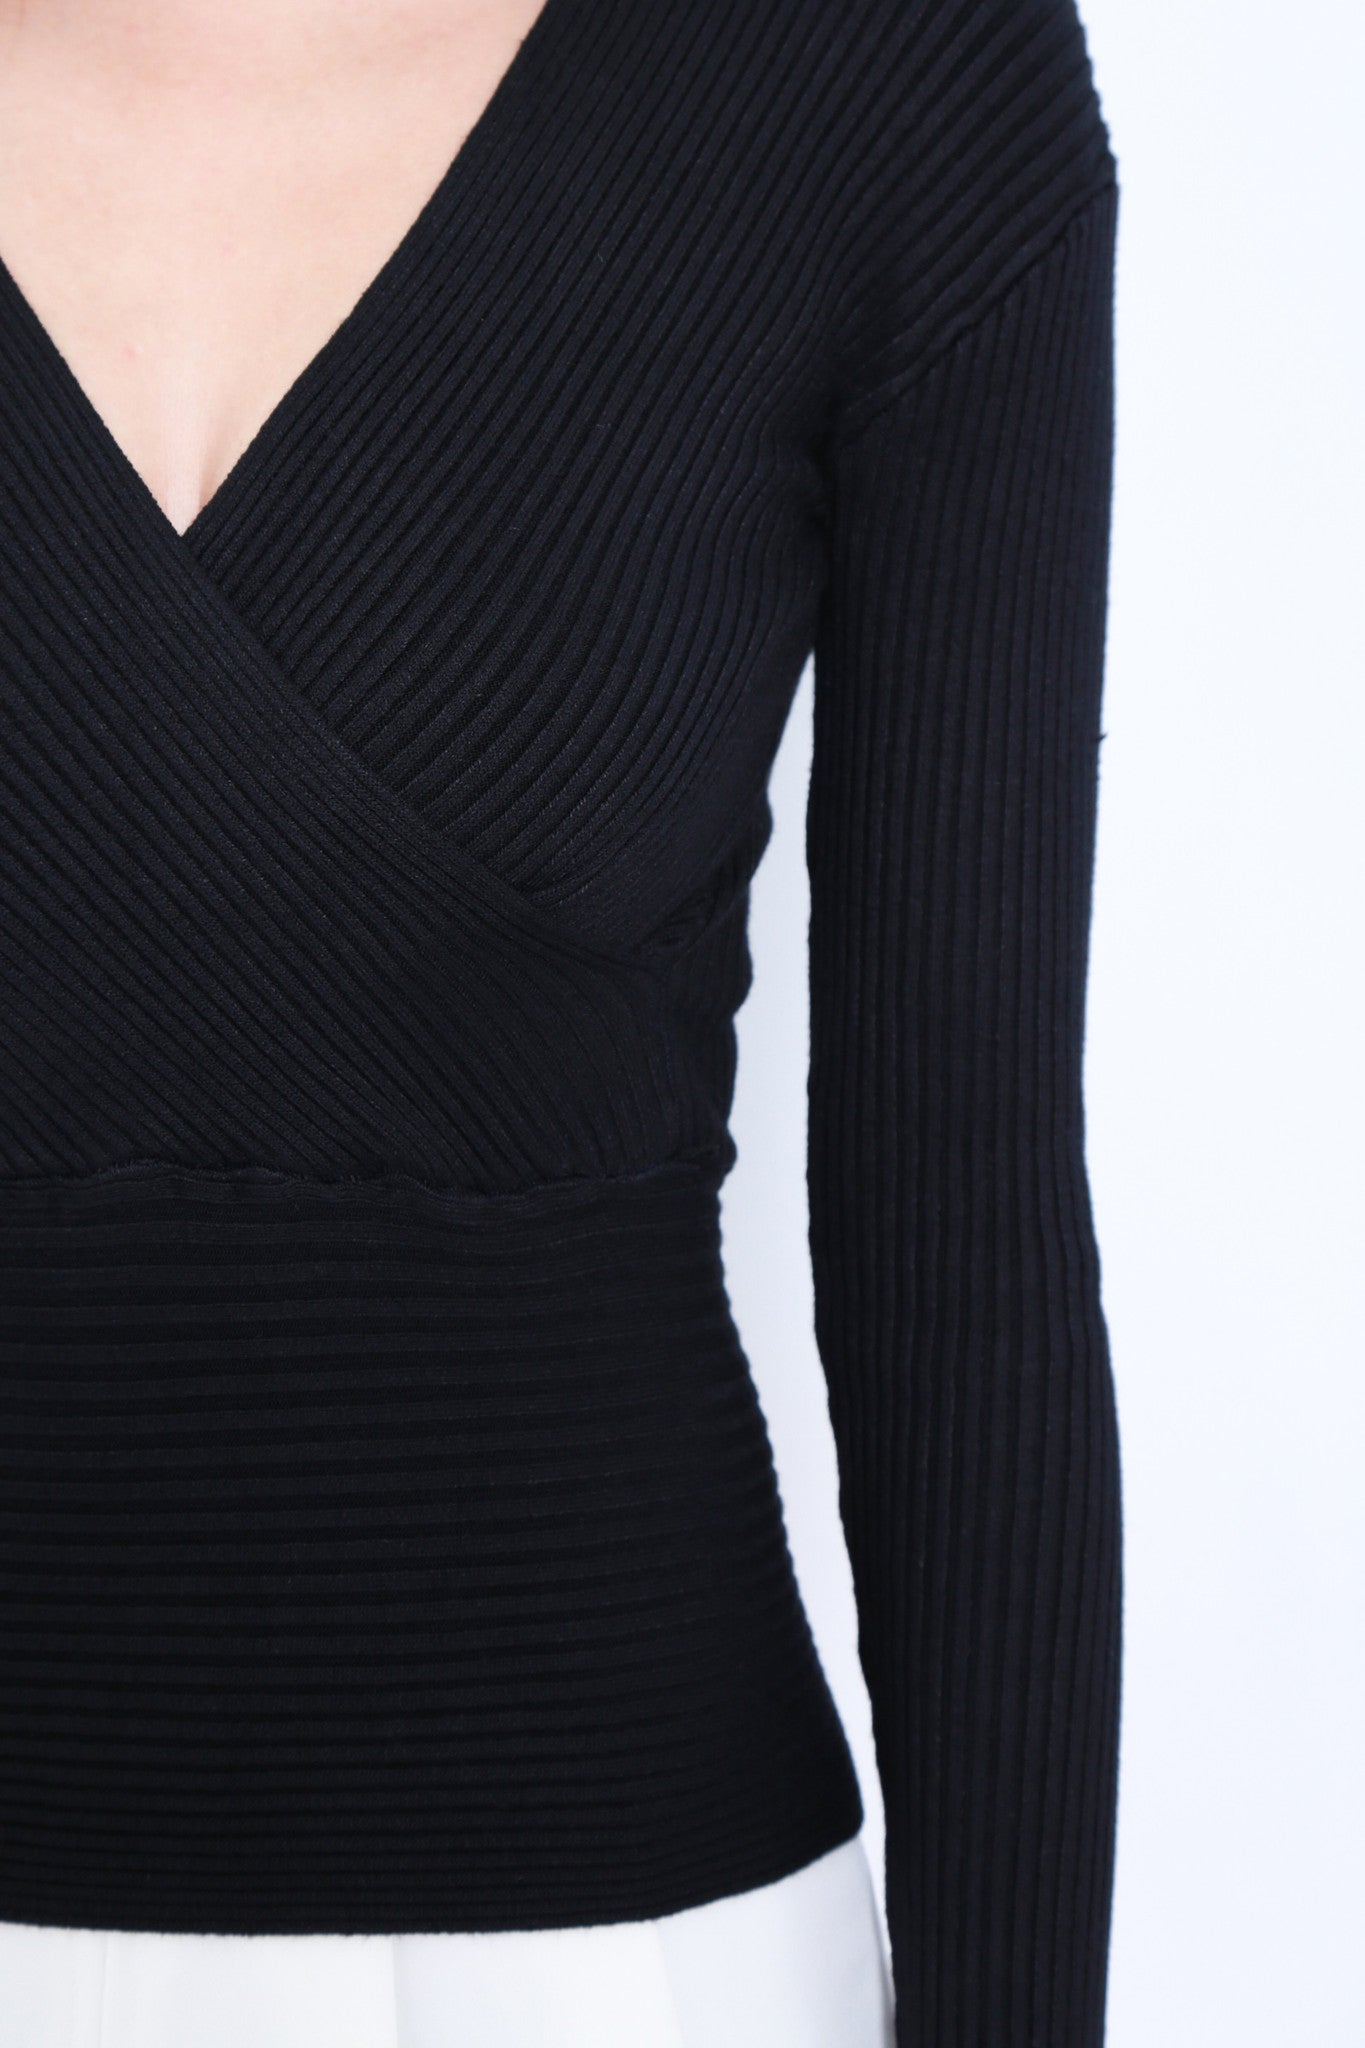 *RESTOCKED* WRAP RIBBED KNIT TOP IN BLACK - TOPAZETTE